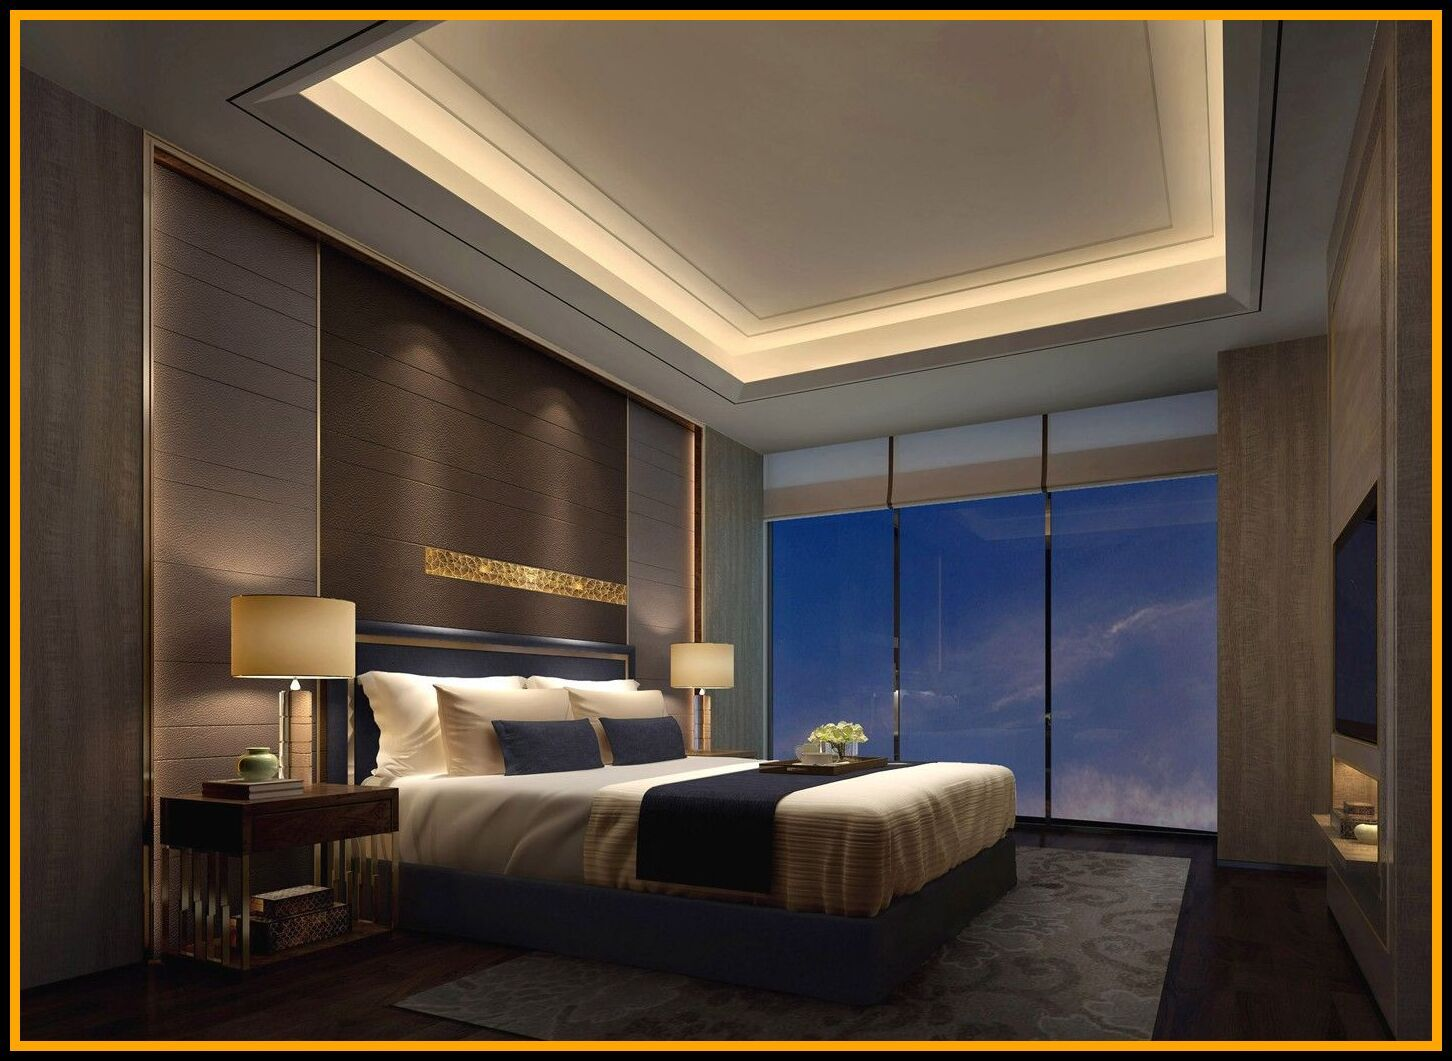 Modern Master Bedroom Ceiling Design Modern Master Bedroom Ceiling Design Please Click In 2020 Modern Master Bedroom Ceiling Design Bedroom Bedroom Ceiling Light